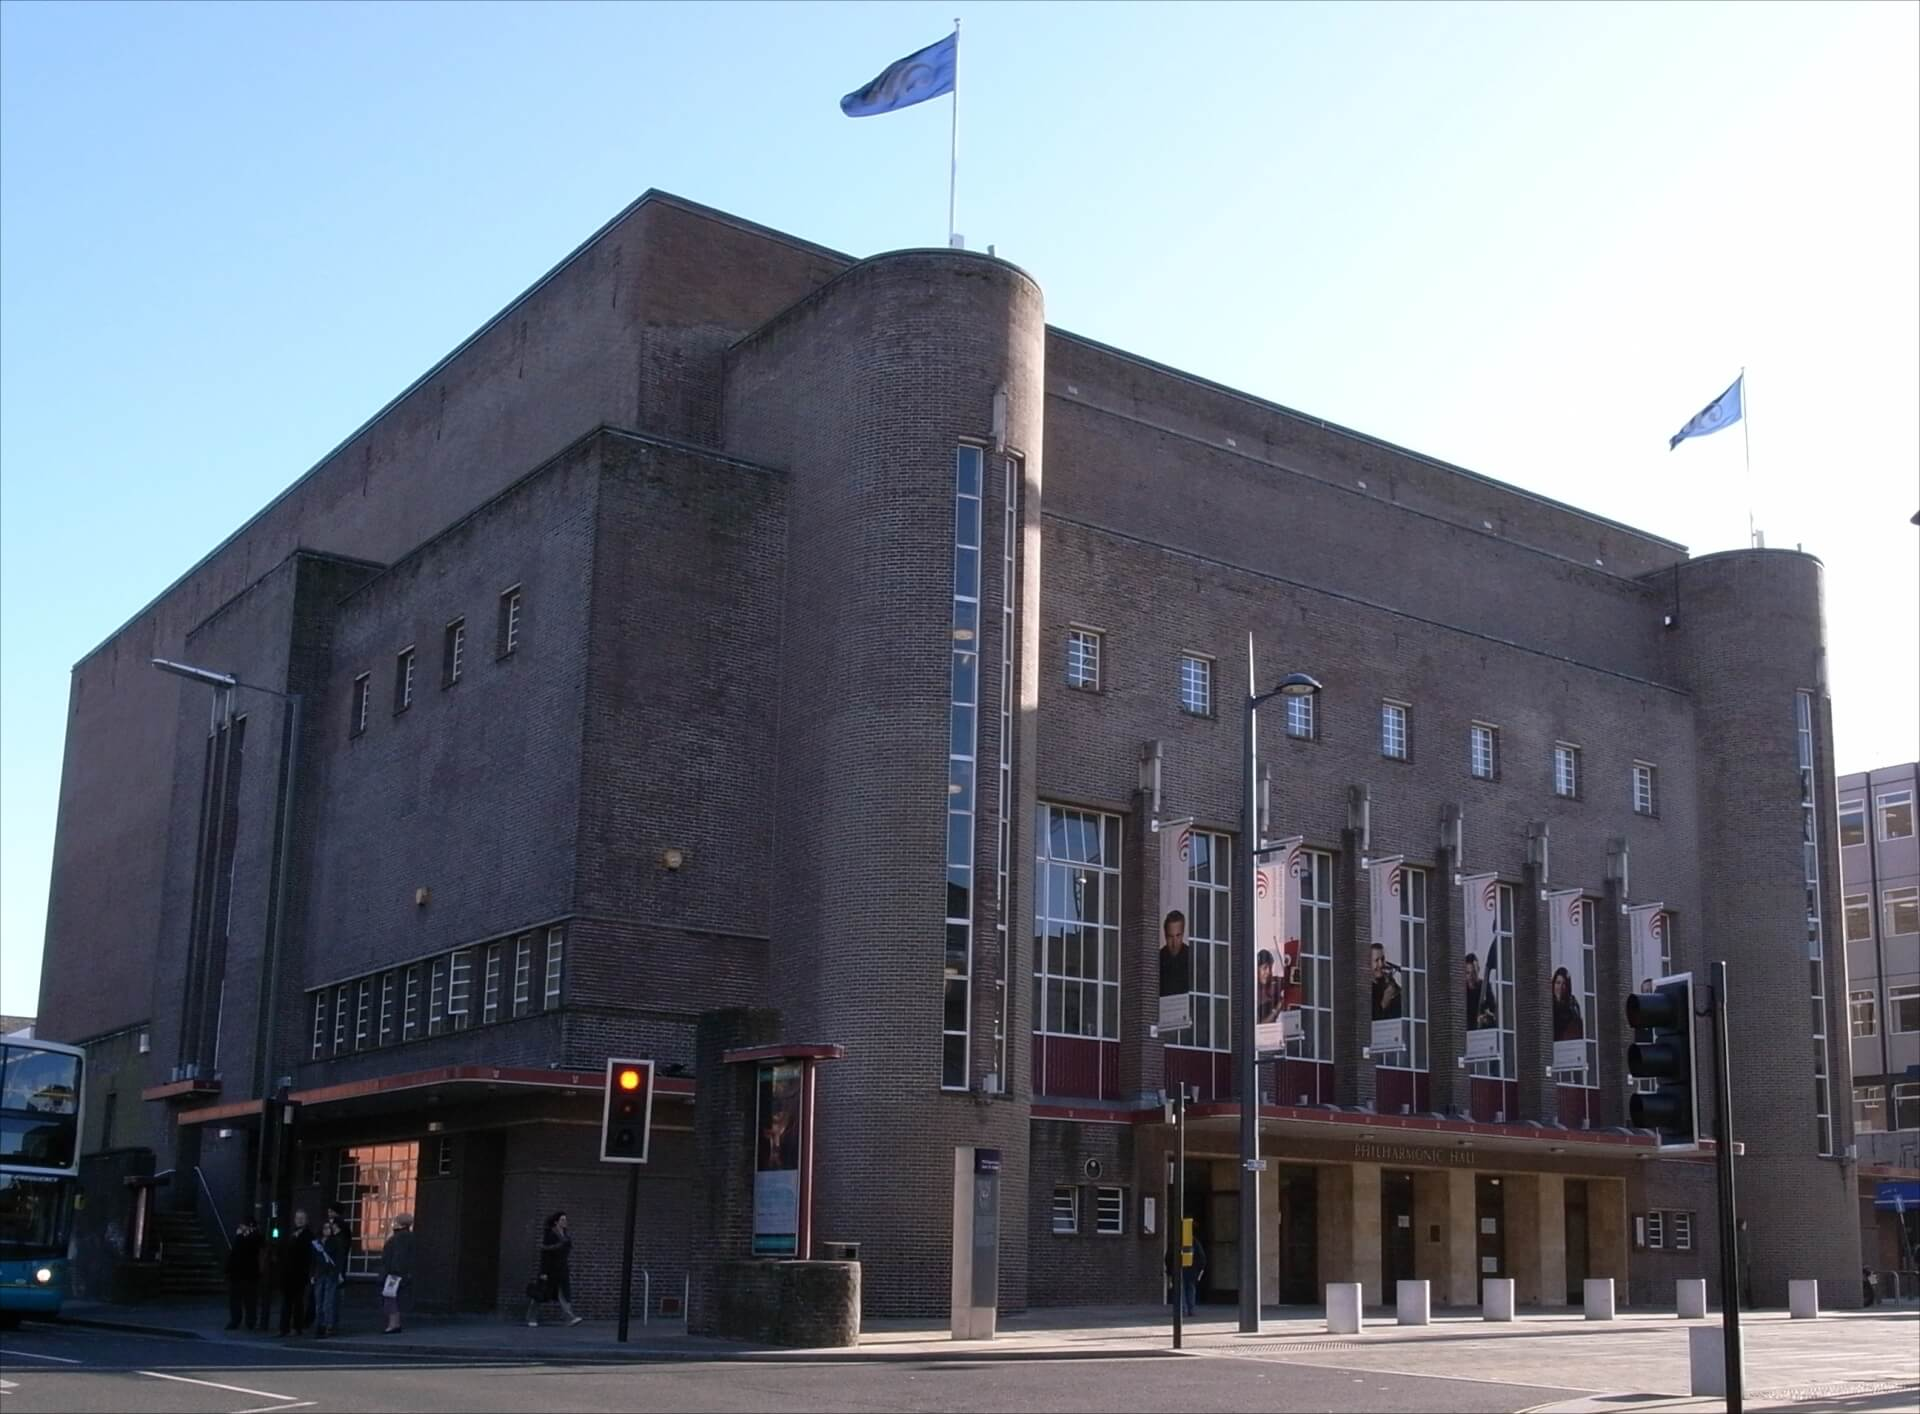 Philharmonic_Hall_Liverpool